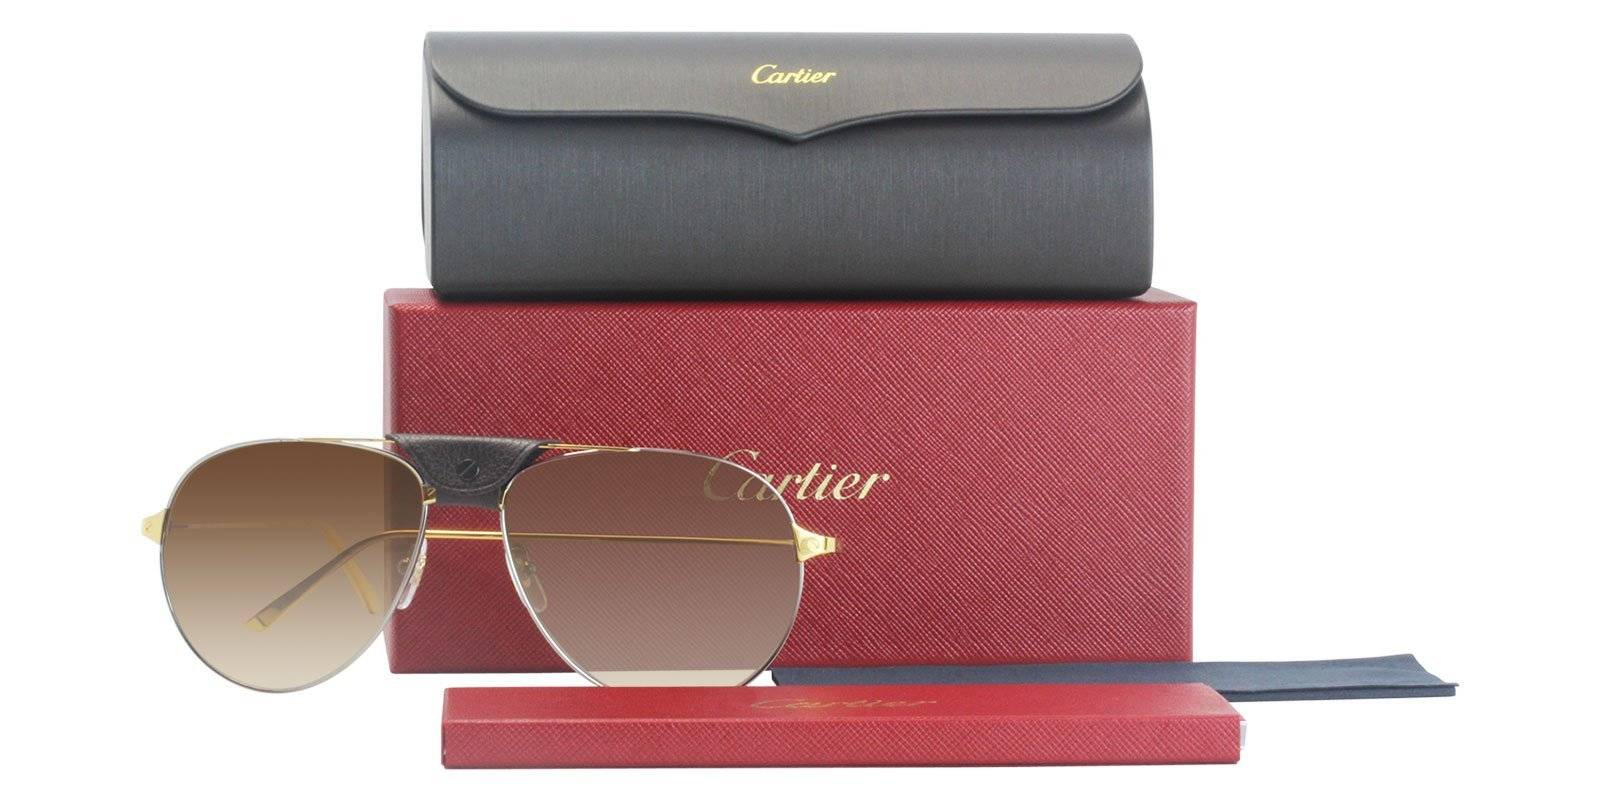 d7f17fd380c130 Top 10 Cartier Sunglasses Gift Ideas for him and her– Designer Eyes